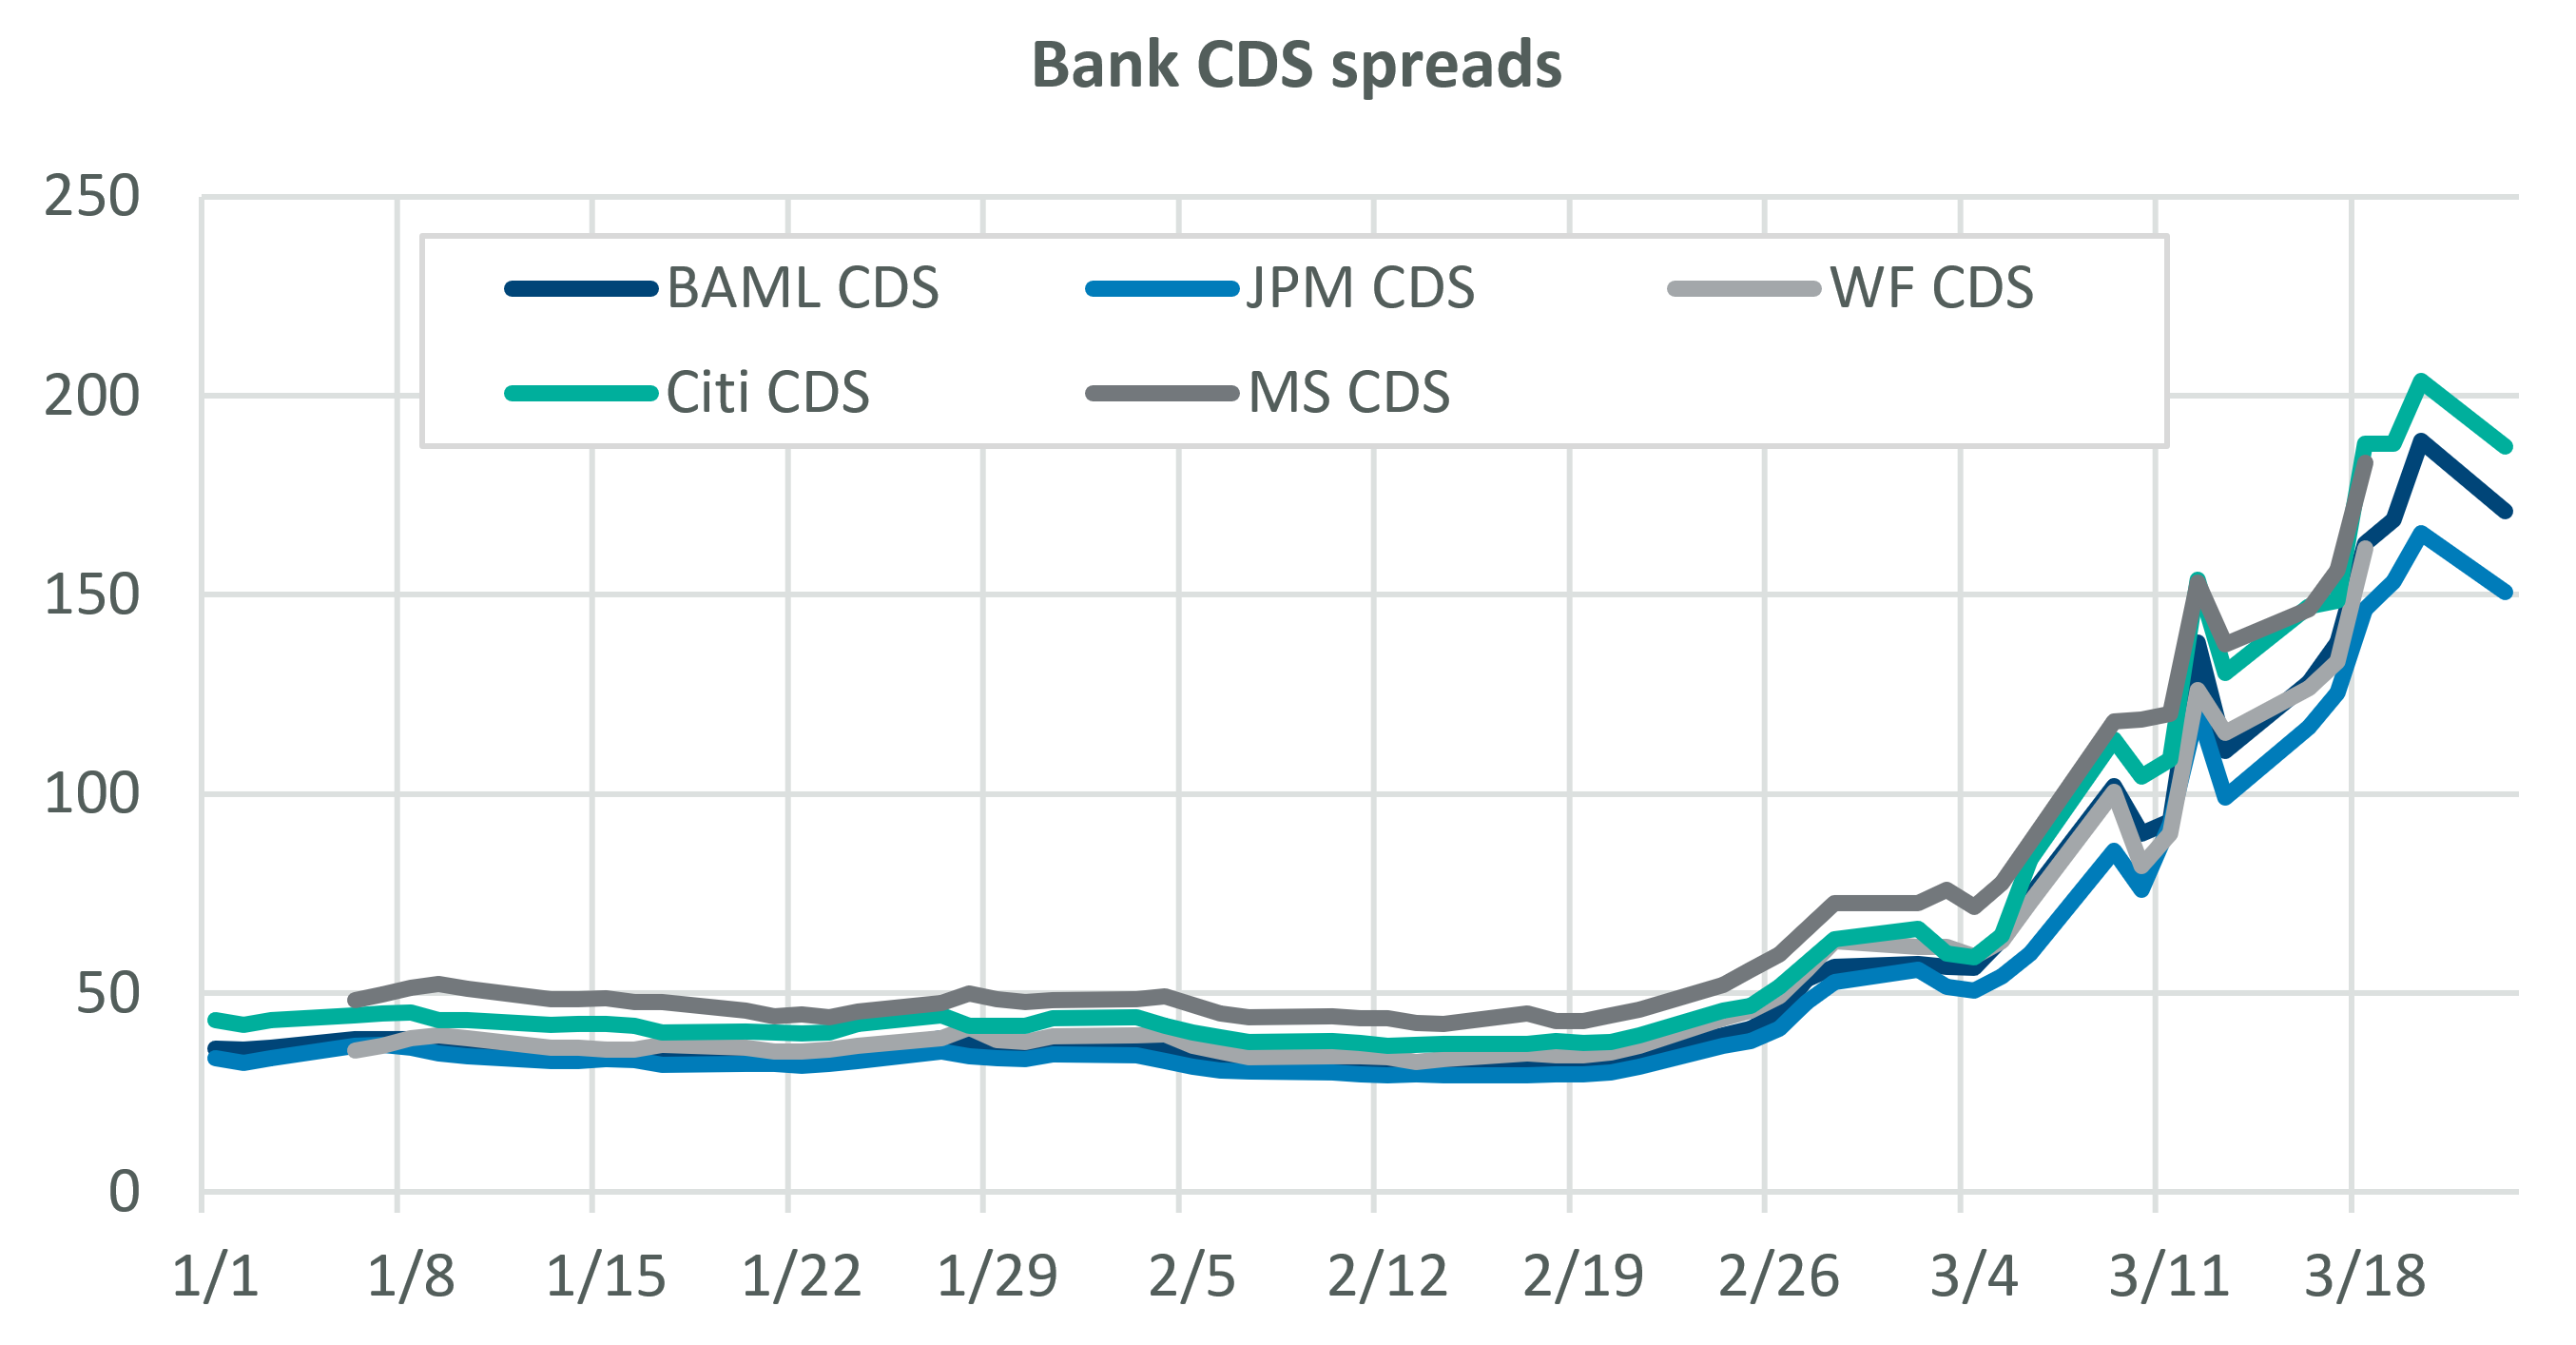 Bank CDS Spreads